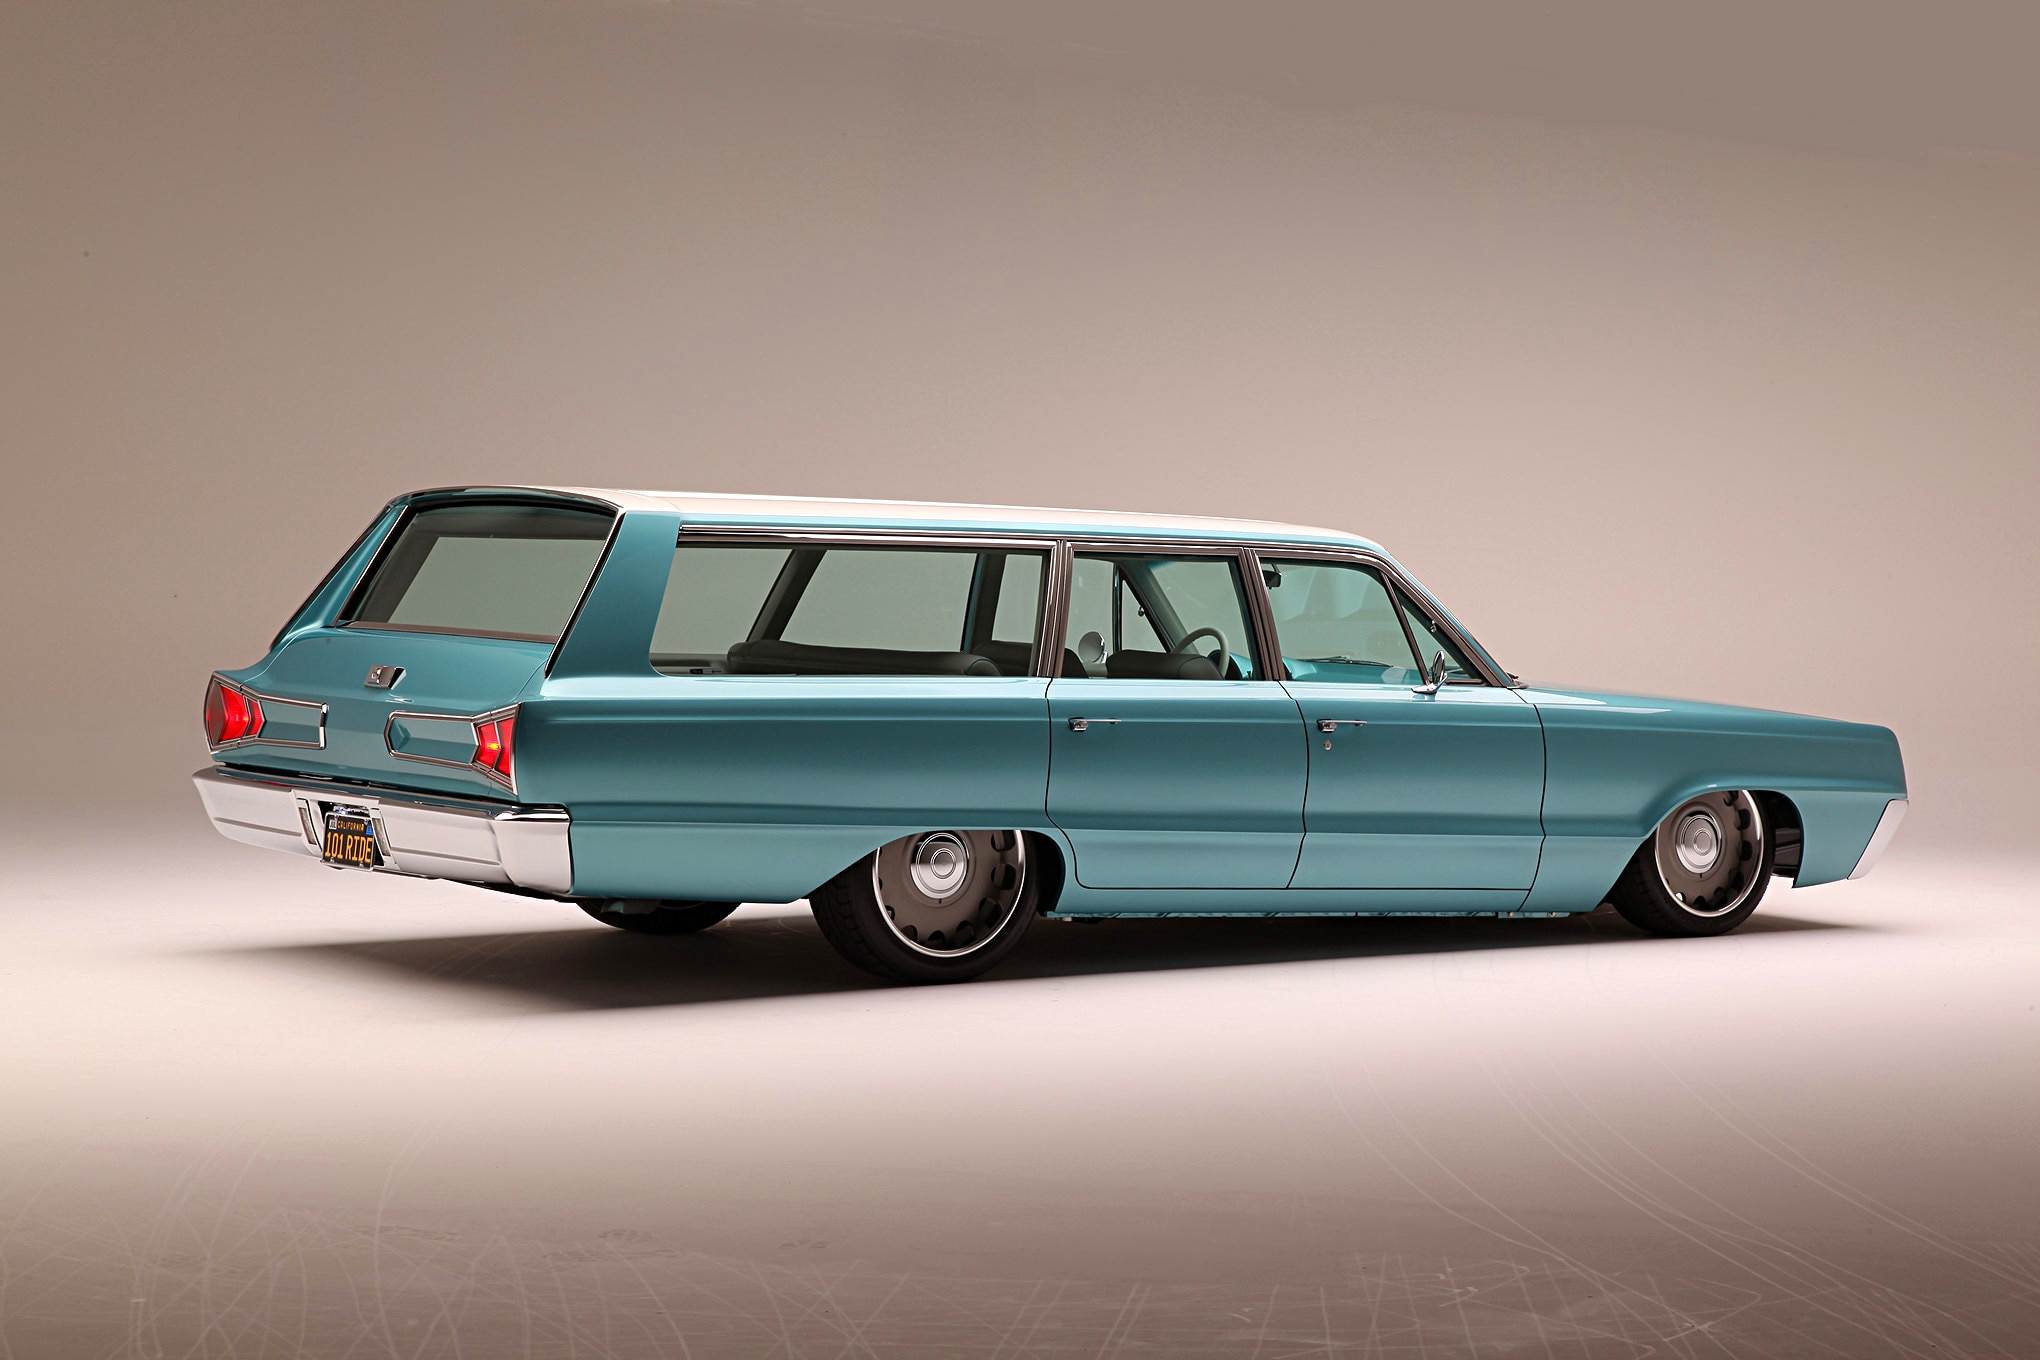 This 1966 Dodge Polara Station Wagon Is a Surfer's Paradise